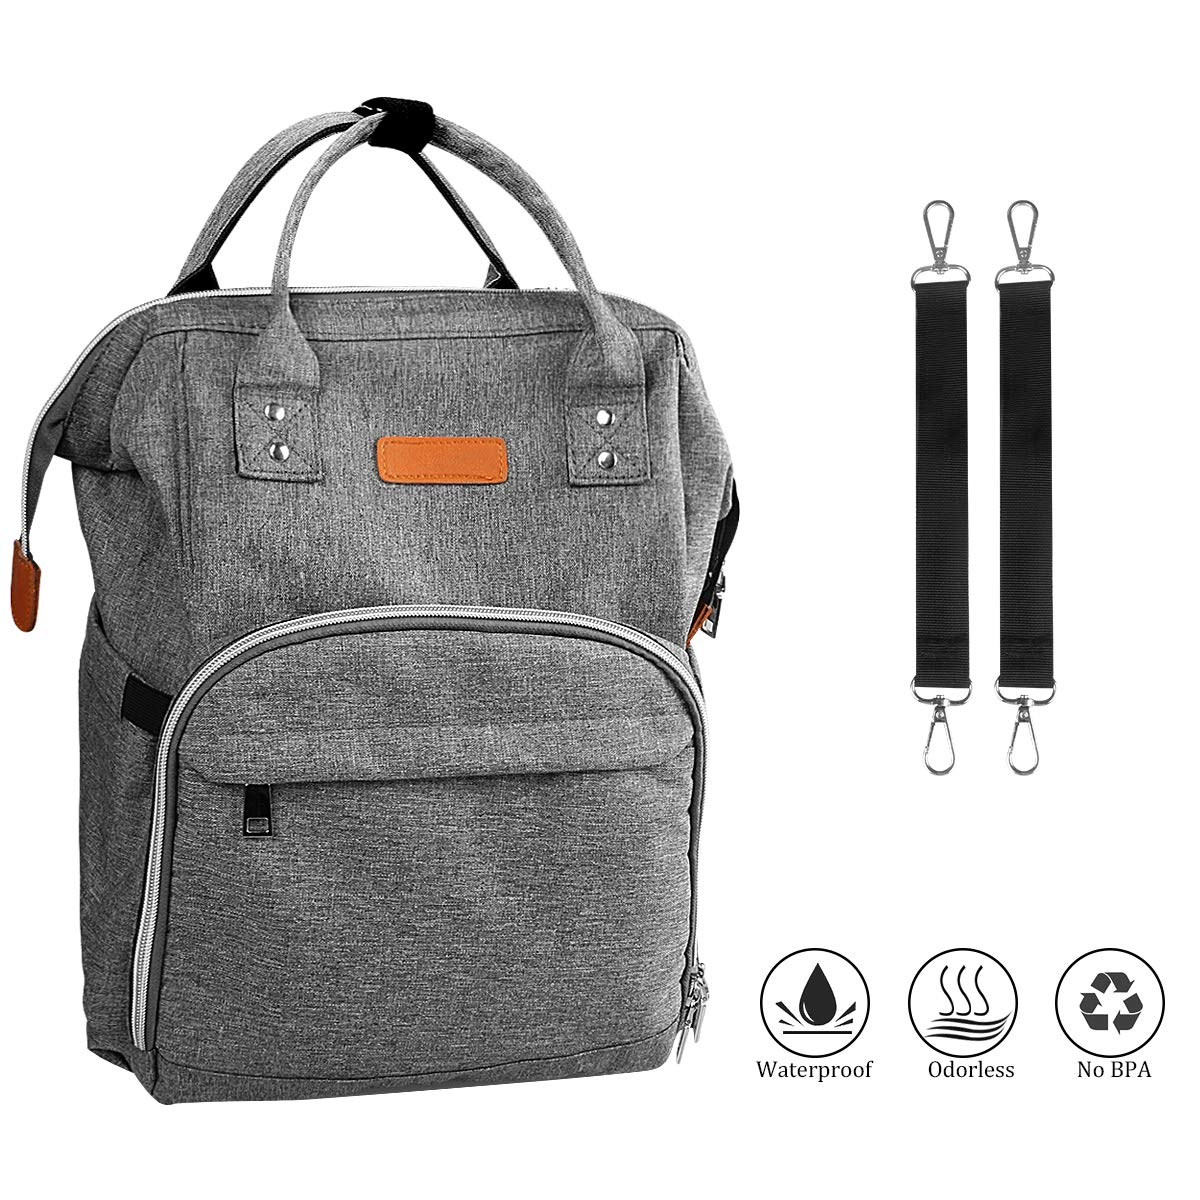 Baby Changing Backpack Diaper Bag Multi-Function Nappy Changing Bag Waterproof Large Capacity Mummy Bag Organizer with Stroller Clips for Baby Care, Grey YDK_Store